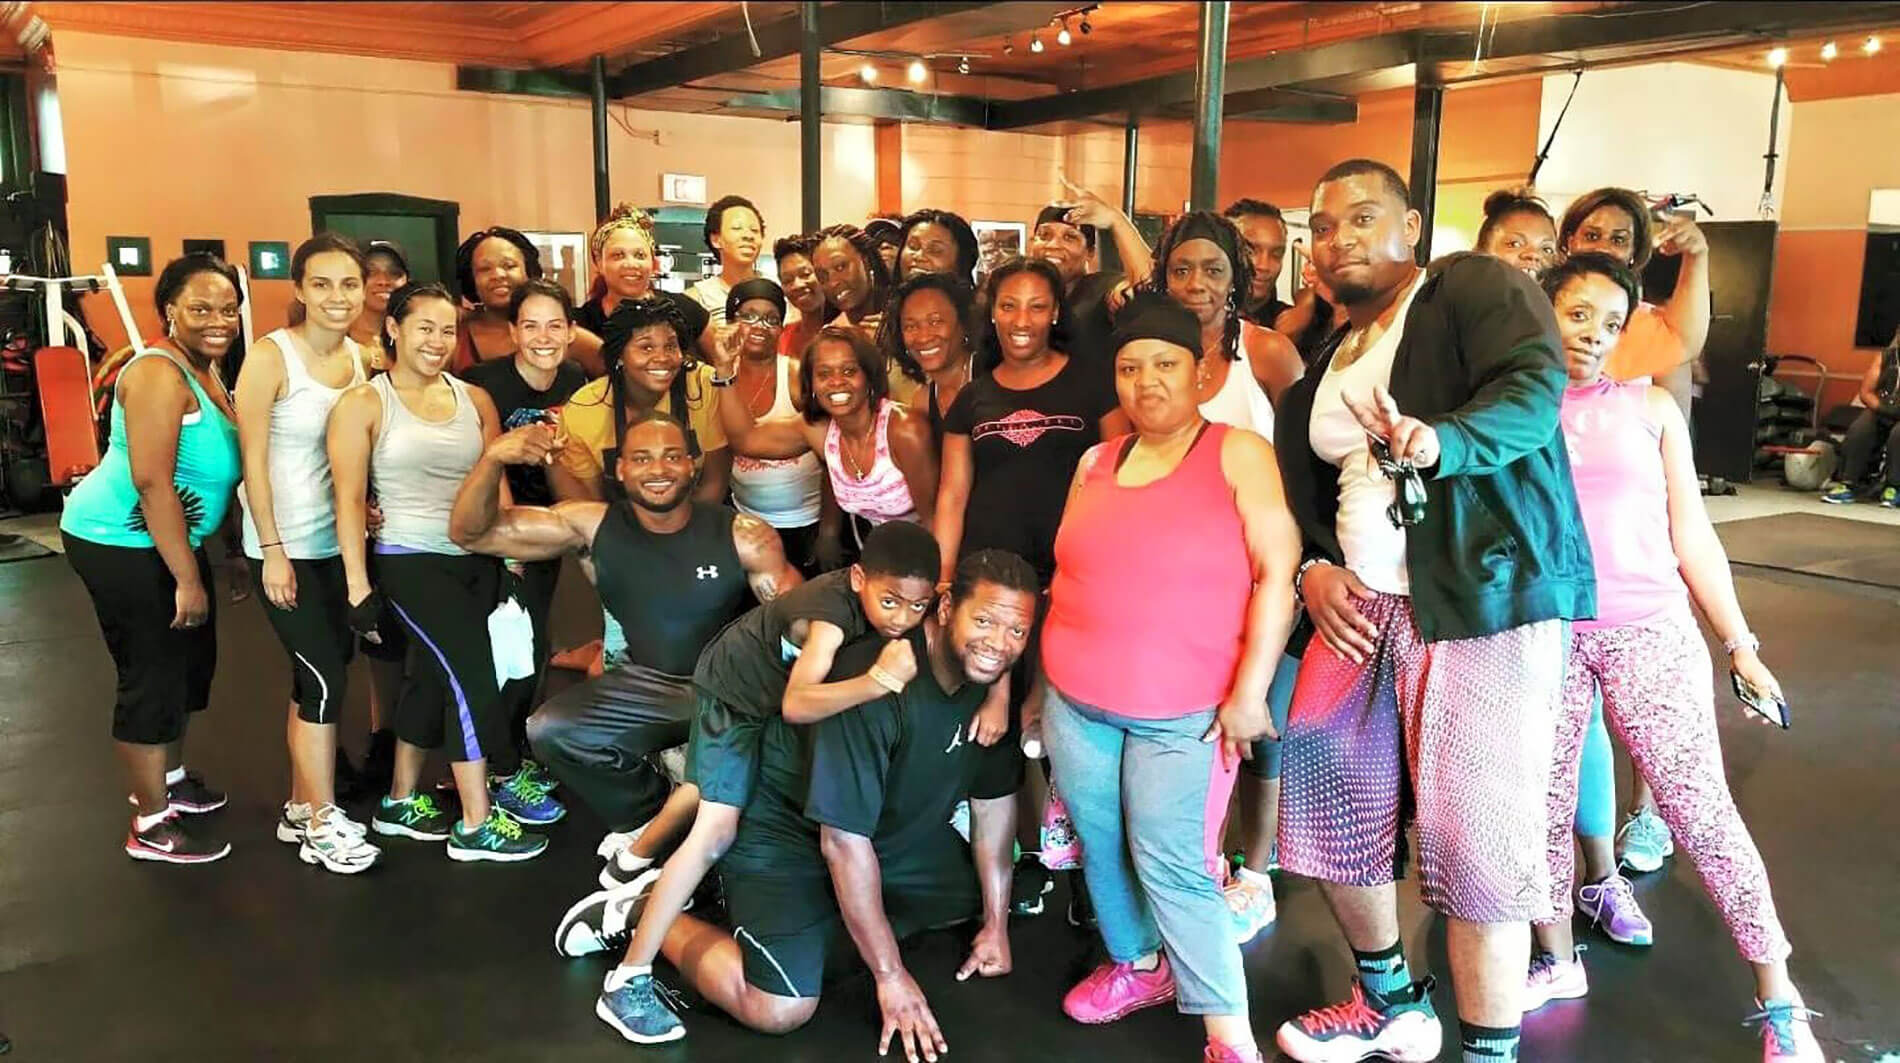 bfit bootcamp oak park